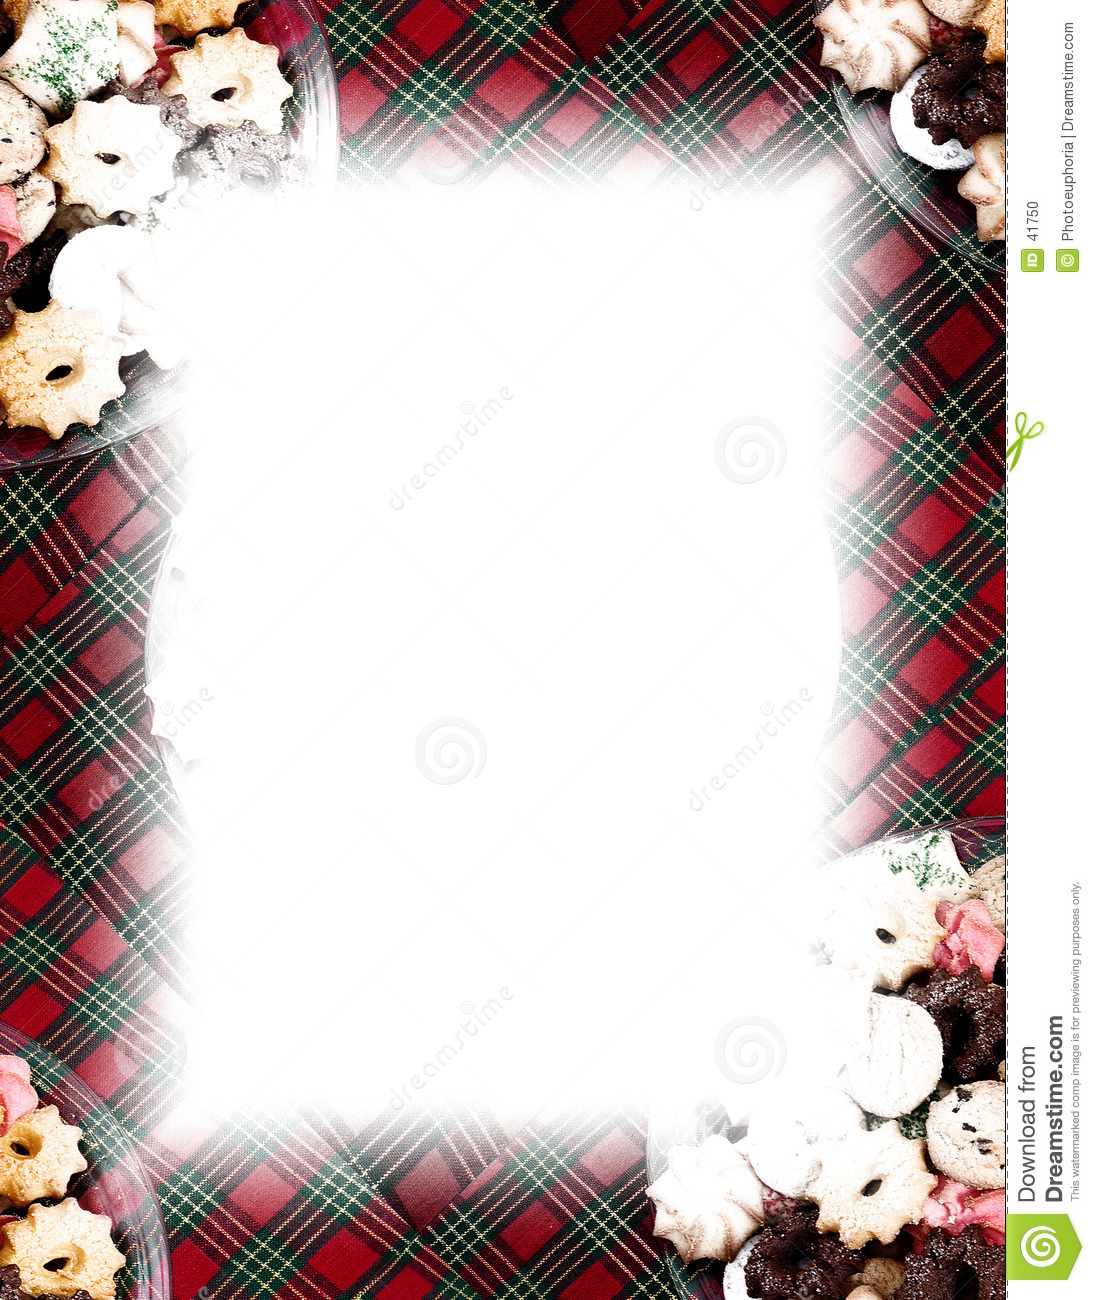 Cookies Amp Plaid Border On White Stock Illustration Image